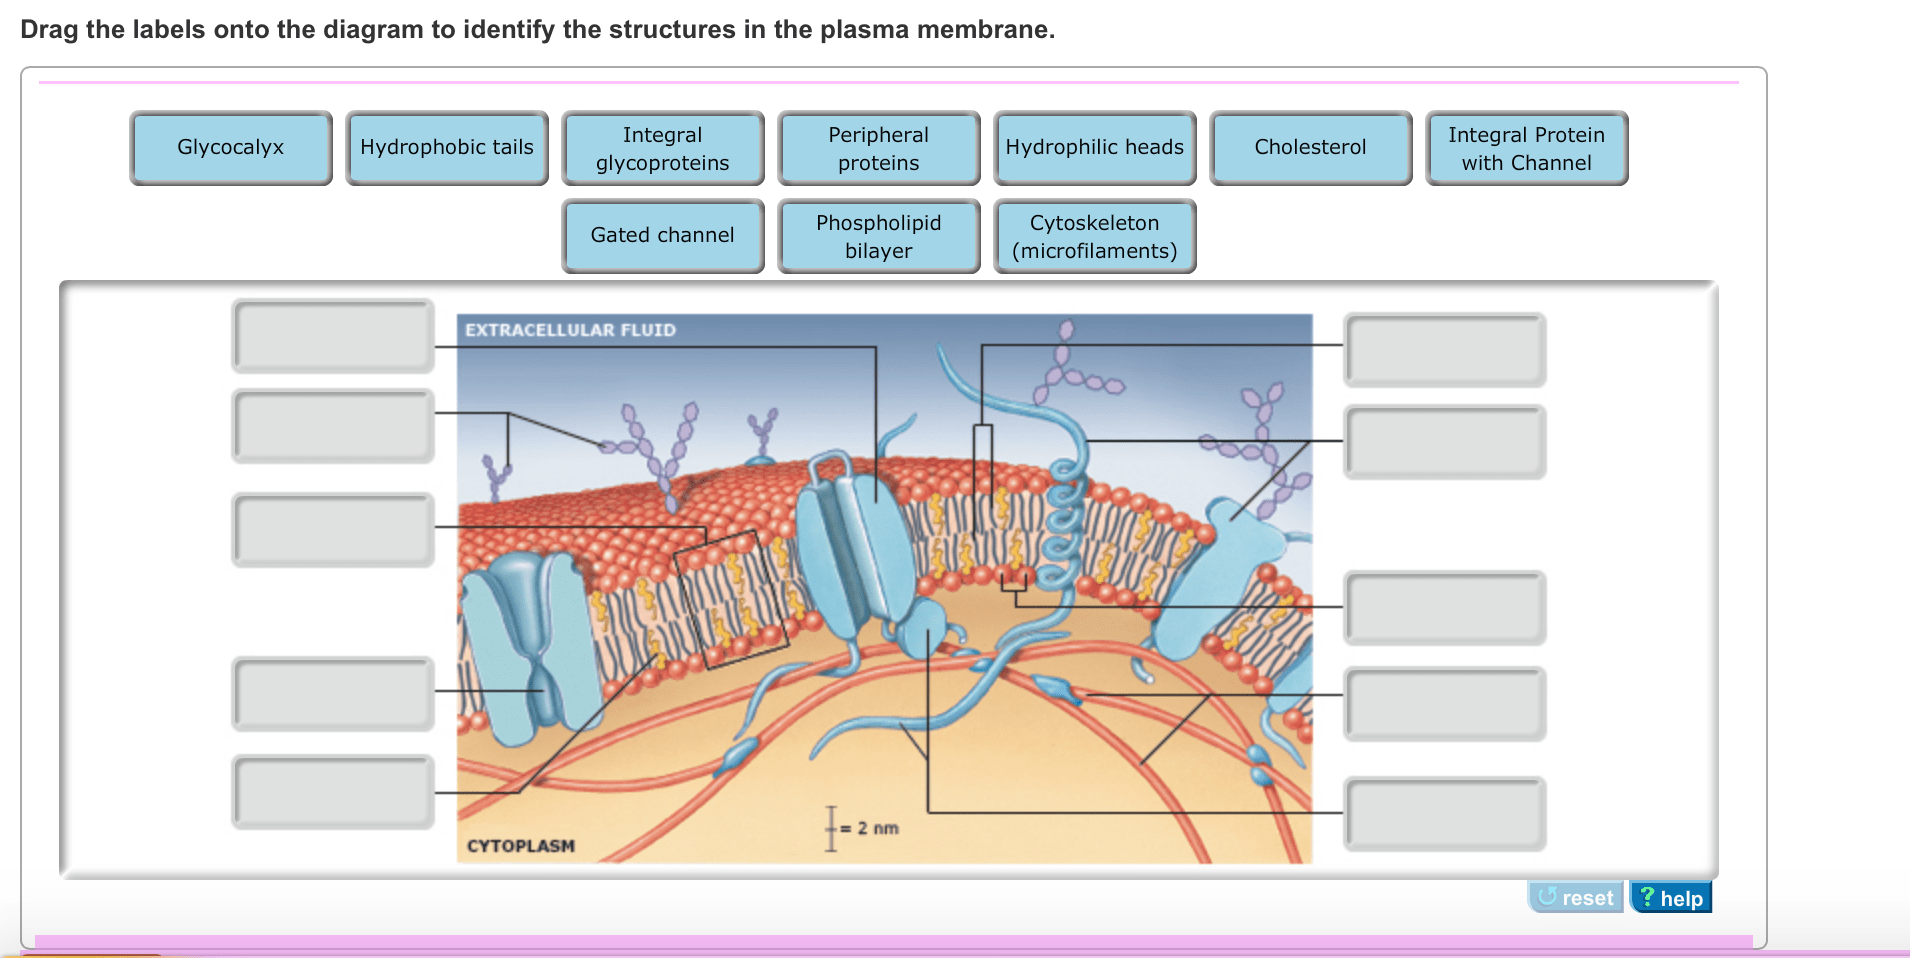 hight resolution of image for drag the labels onto the diagram to identify the structures in the plasma membrane